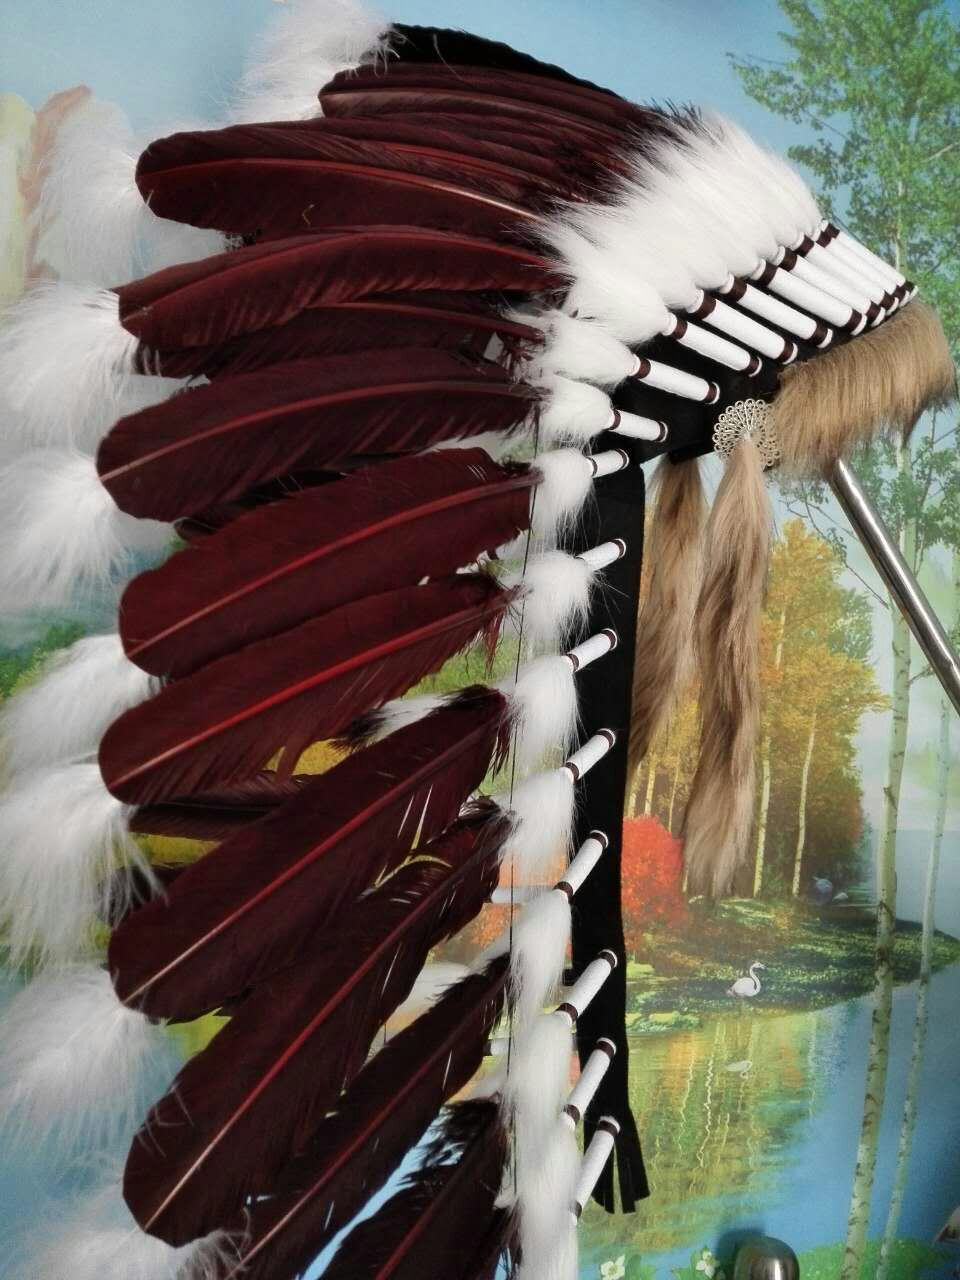 28inches Dark Brown feather headdress headpiece costume halloween party costume party supply